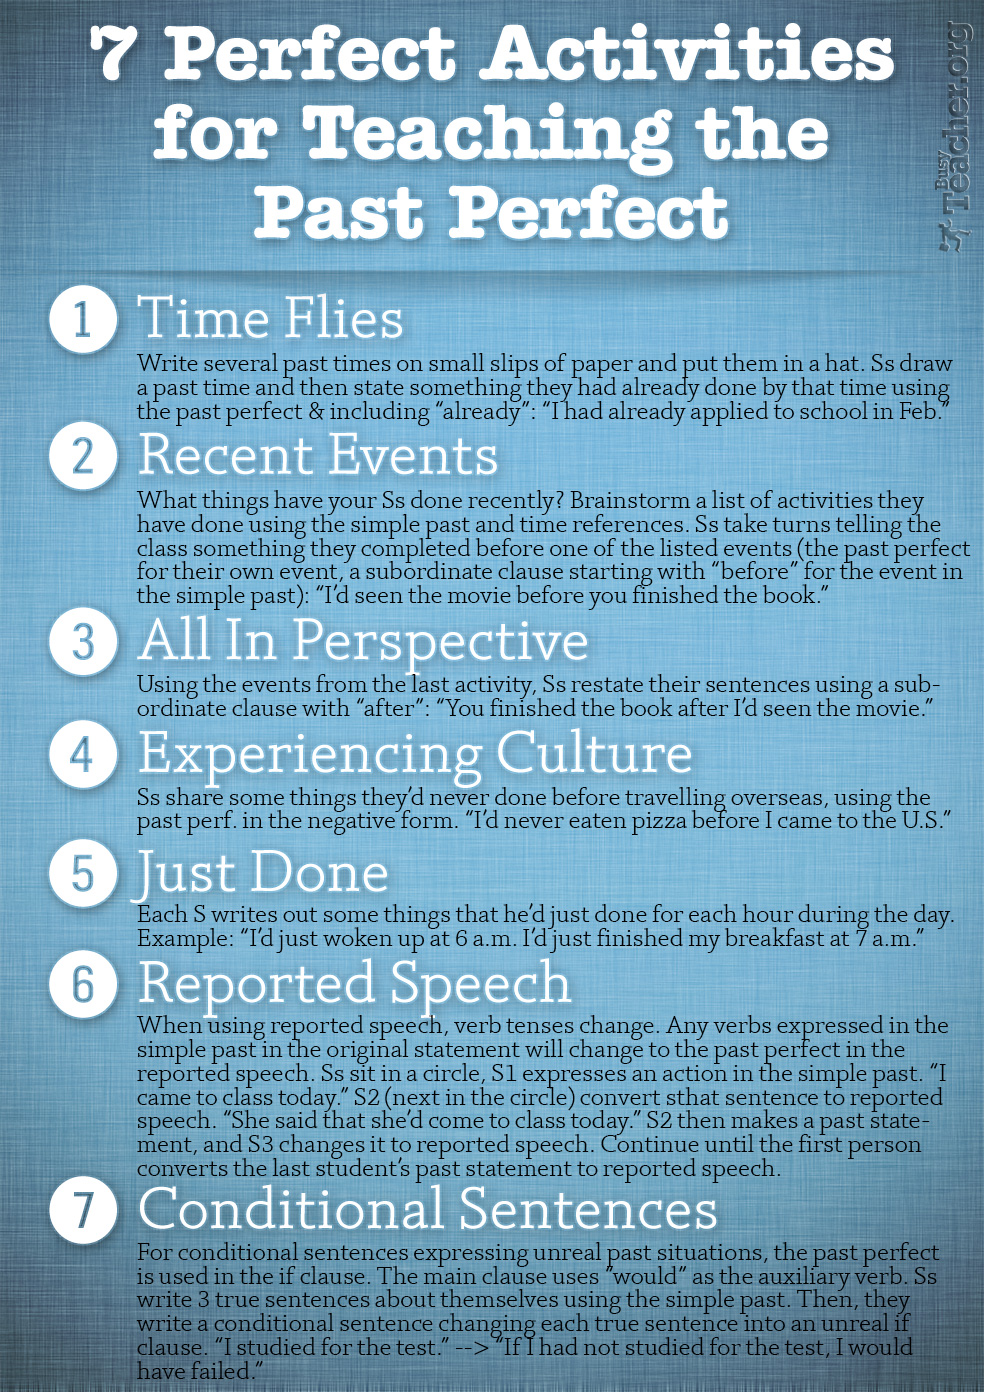 7 Perfect Activities to Teach the Past Perfect: Poster